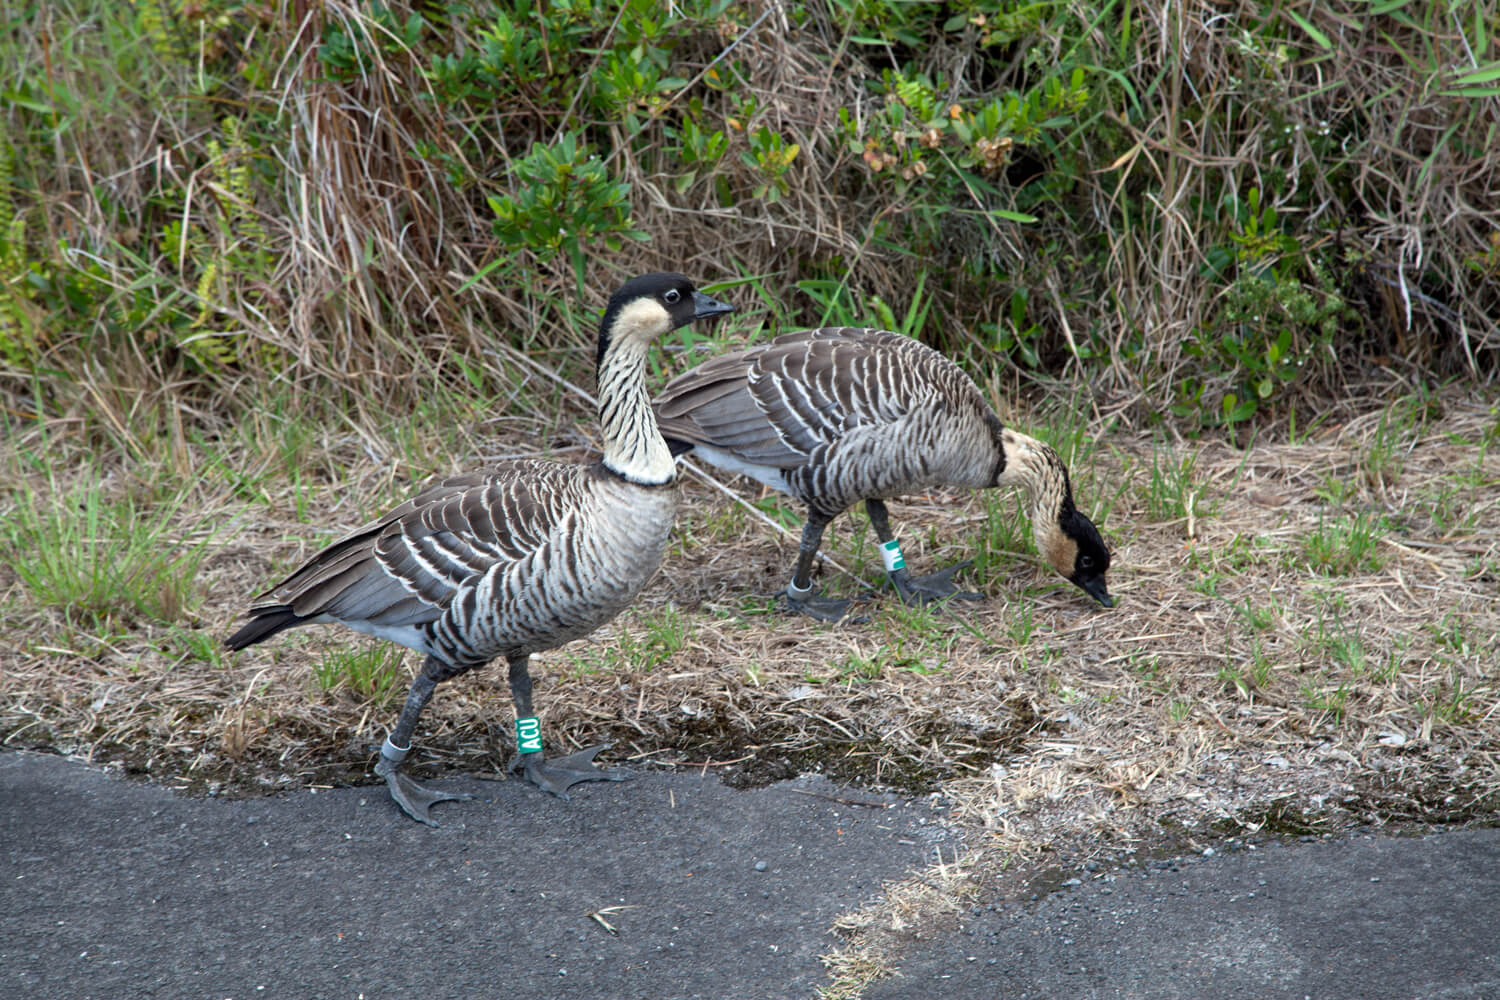 NeNe - official bird of the state of Hawaii.